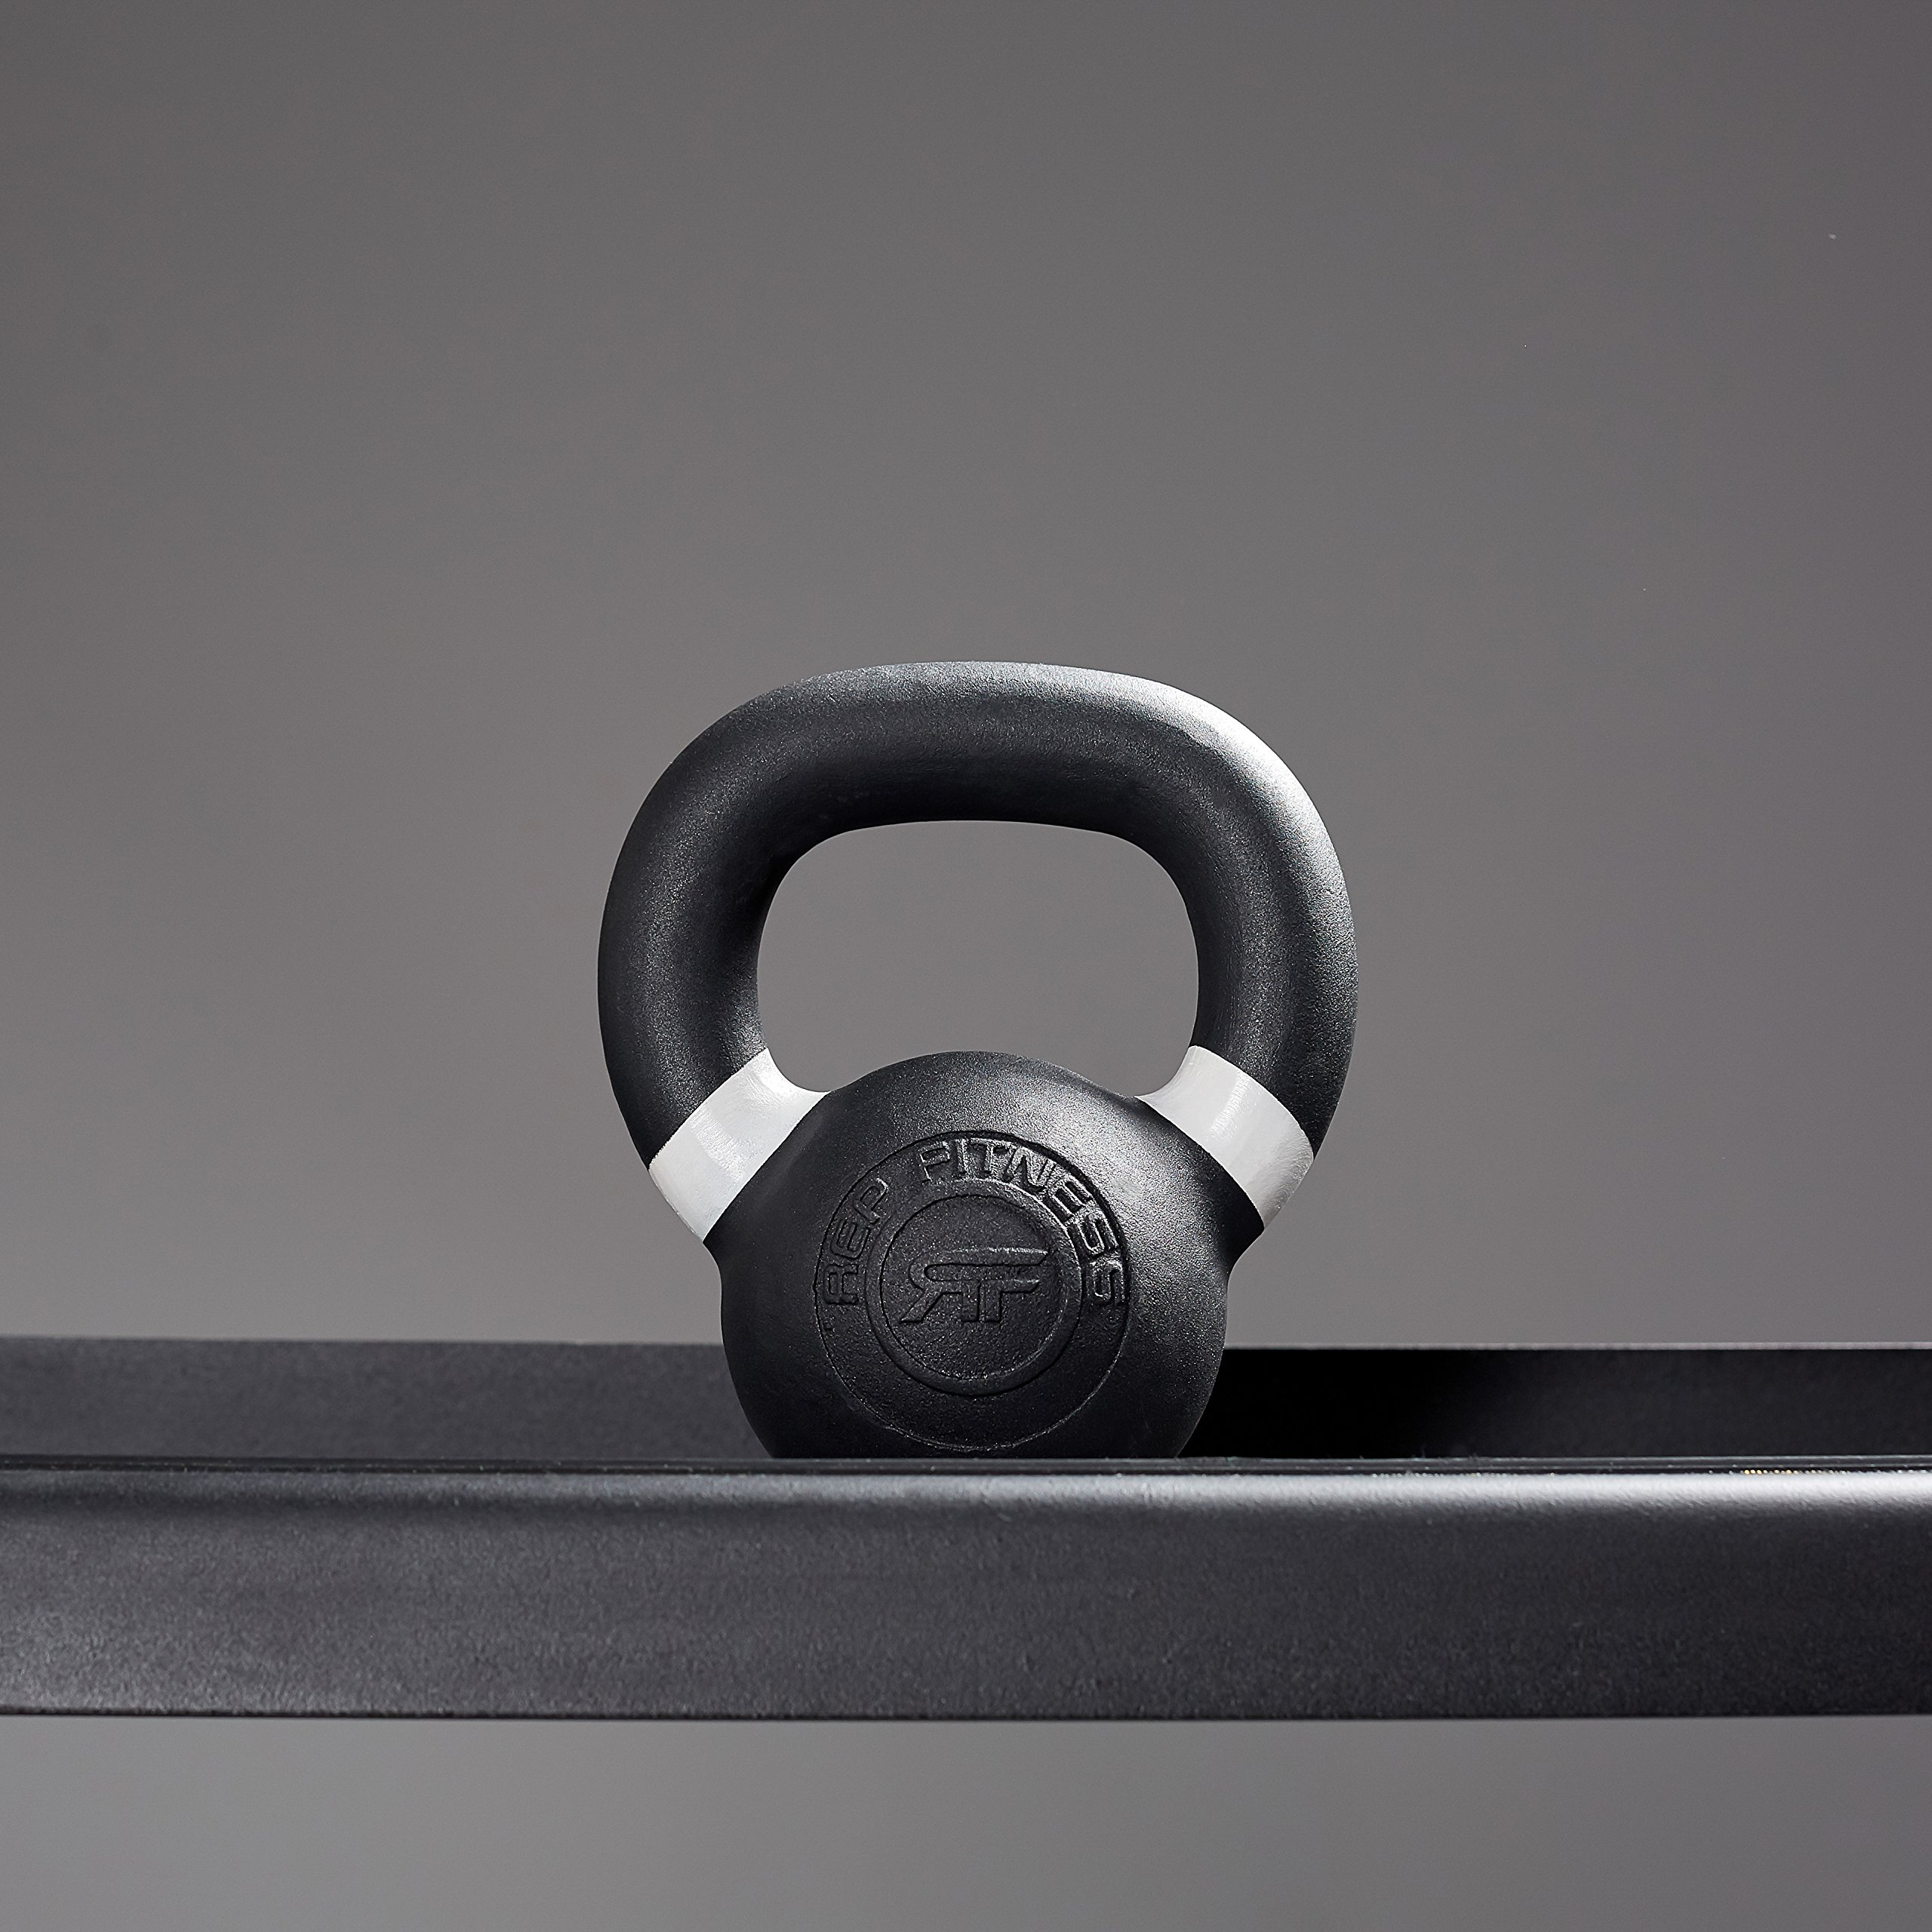 Rep 4 kg Kettlebell for Strength and Conditioning by Rep Fitness (Image #2)